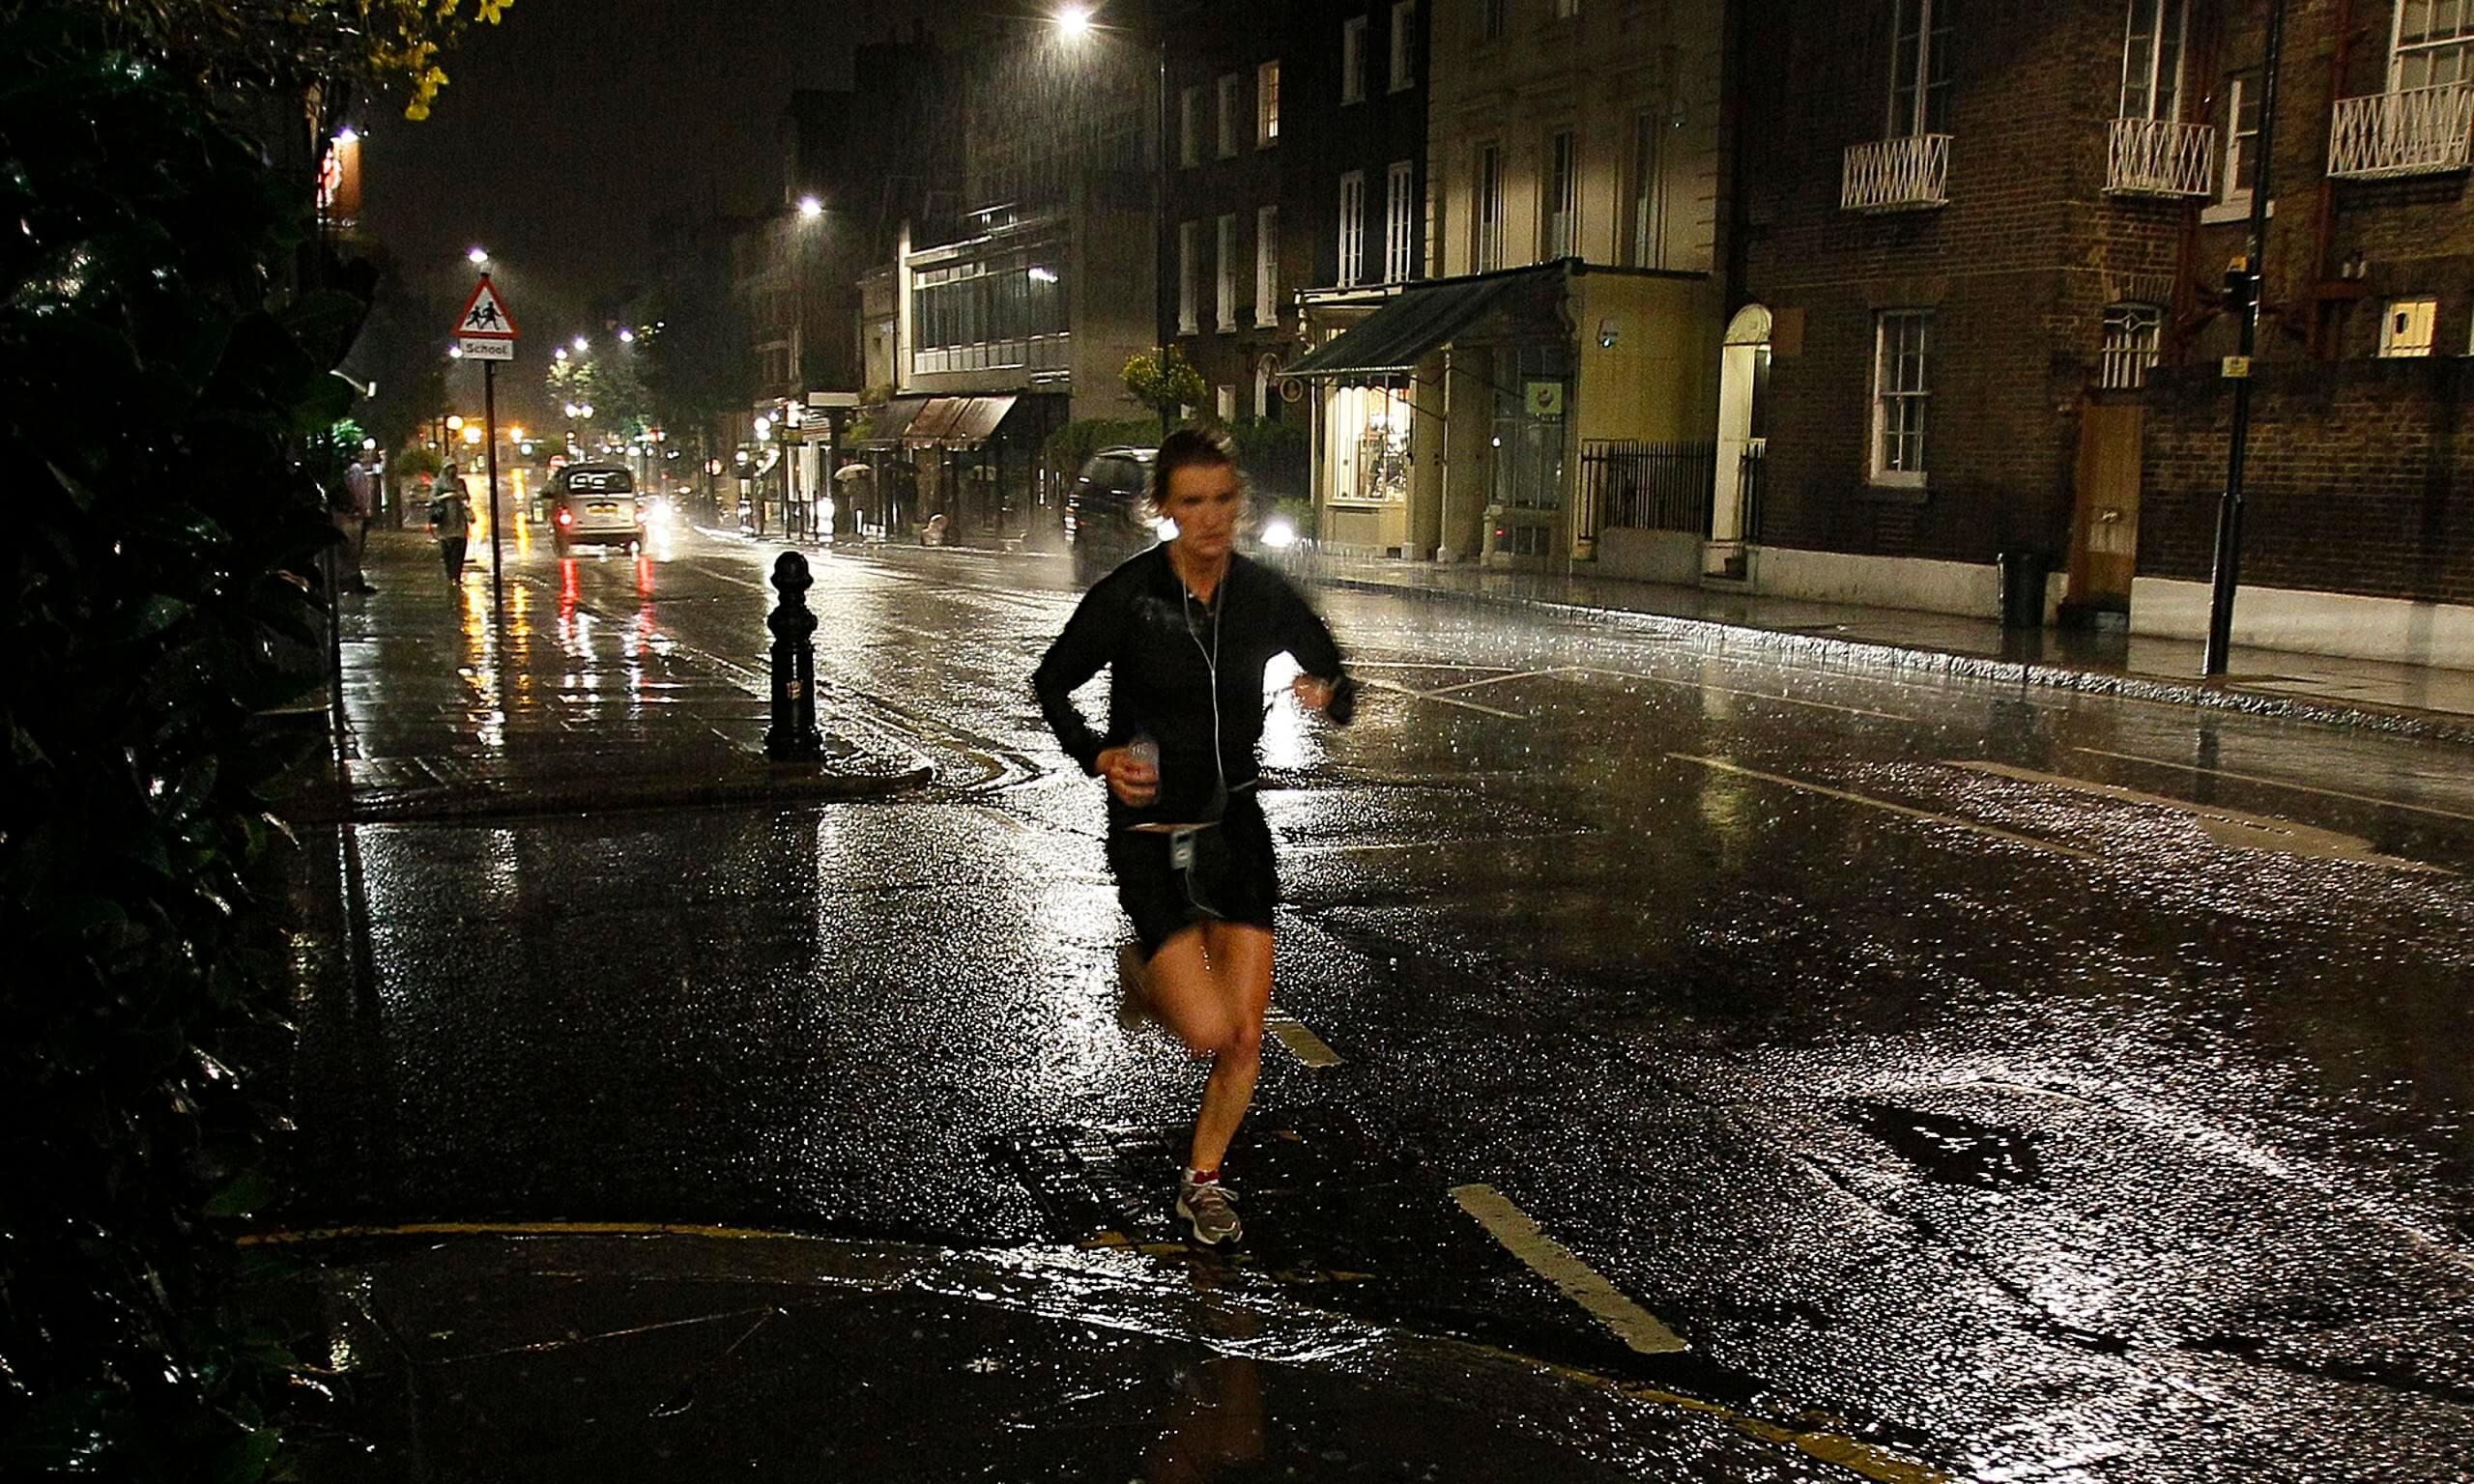 Runner in London street at night